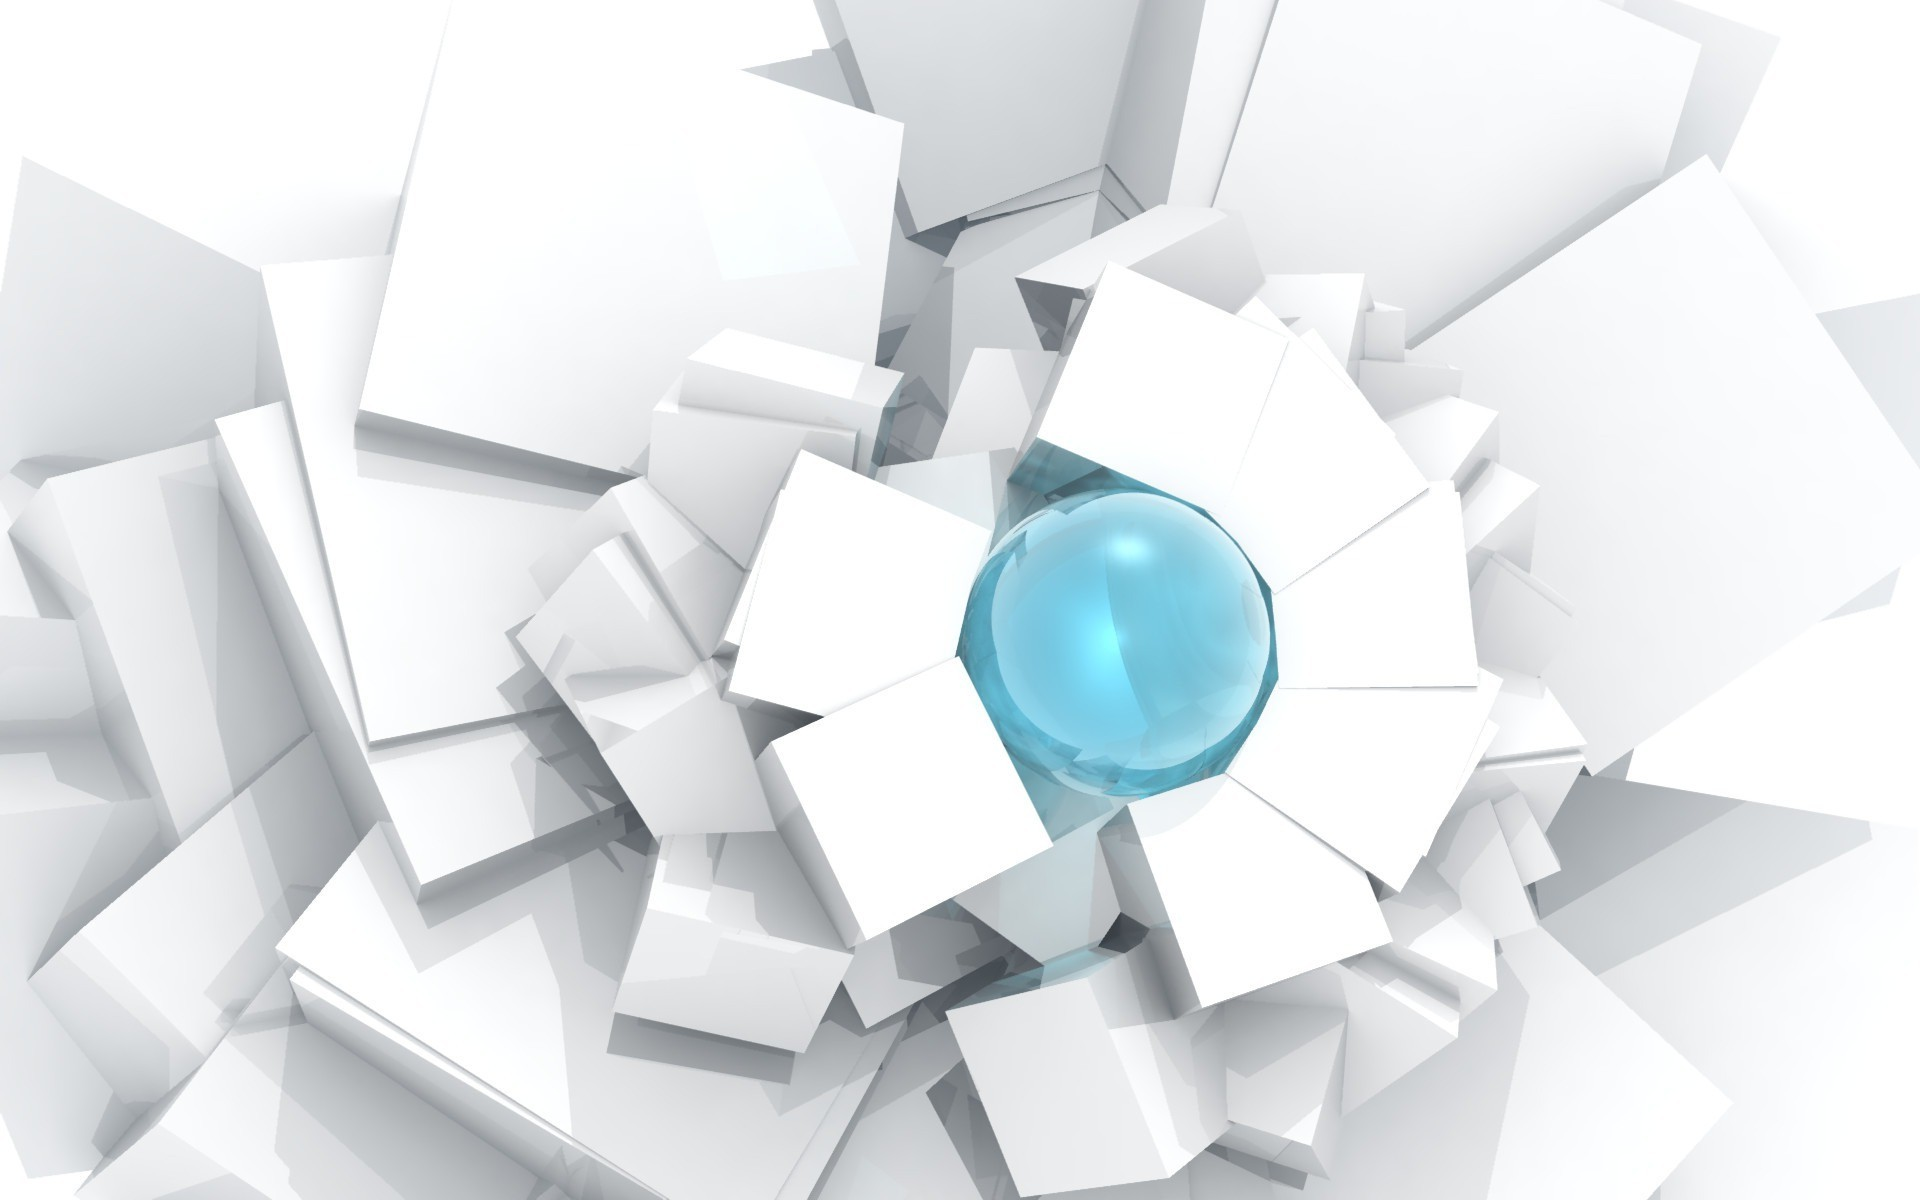 Blue sphere trapped among white cubes